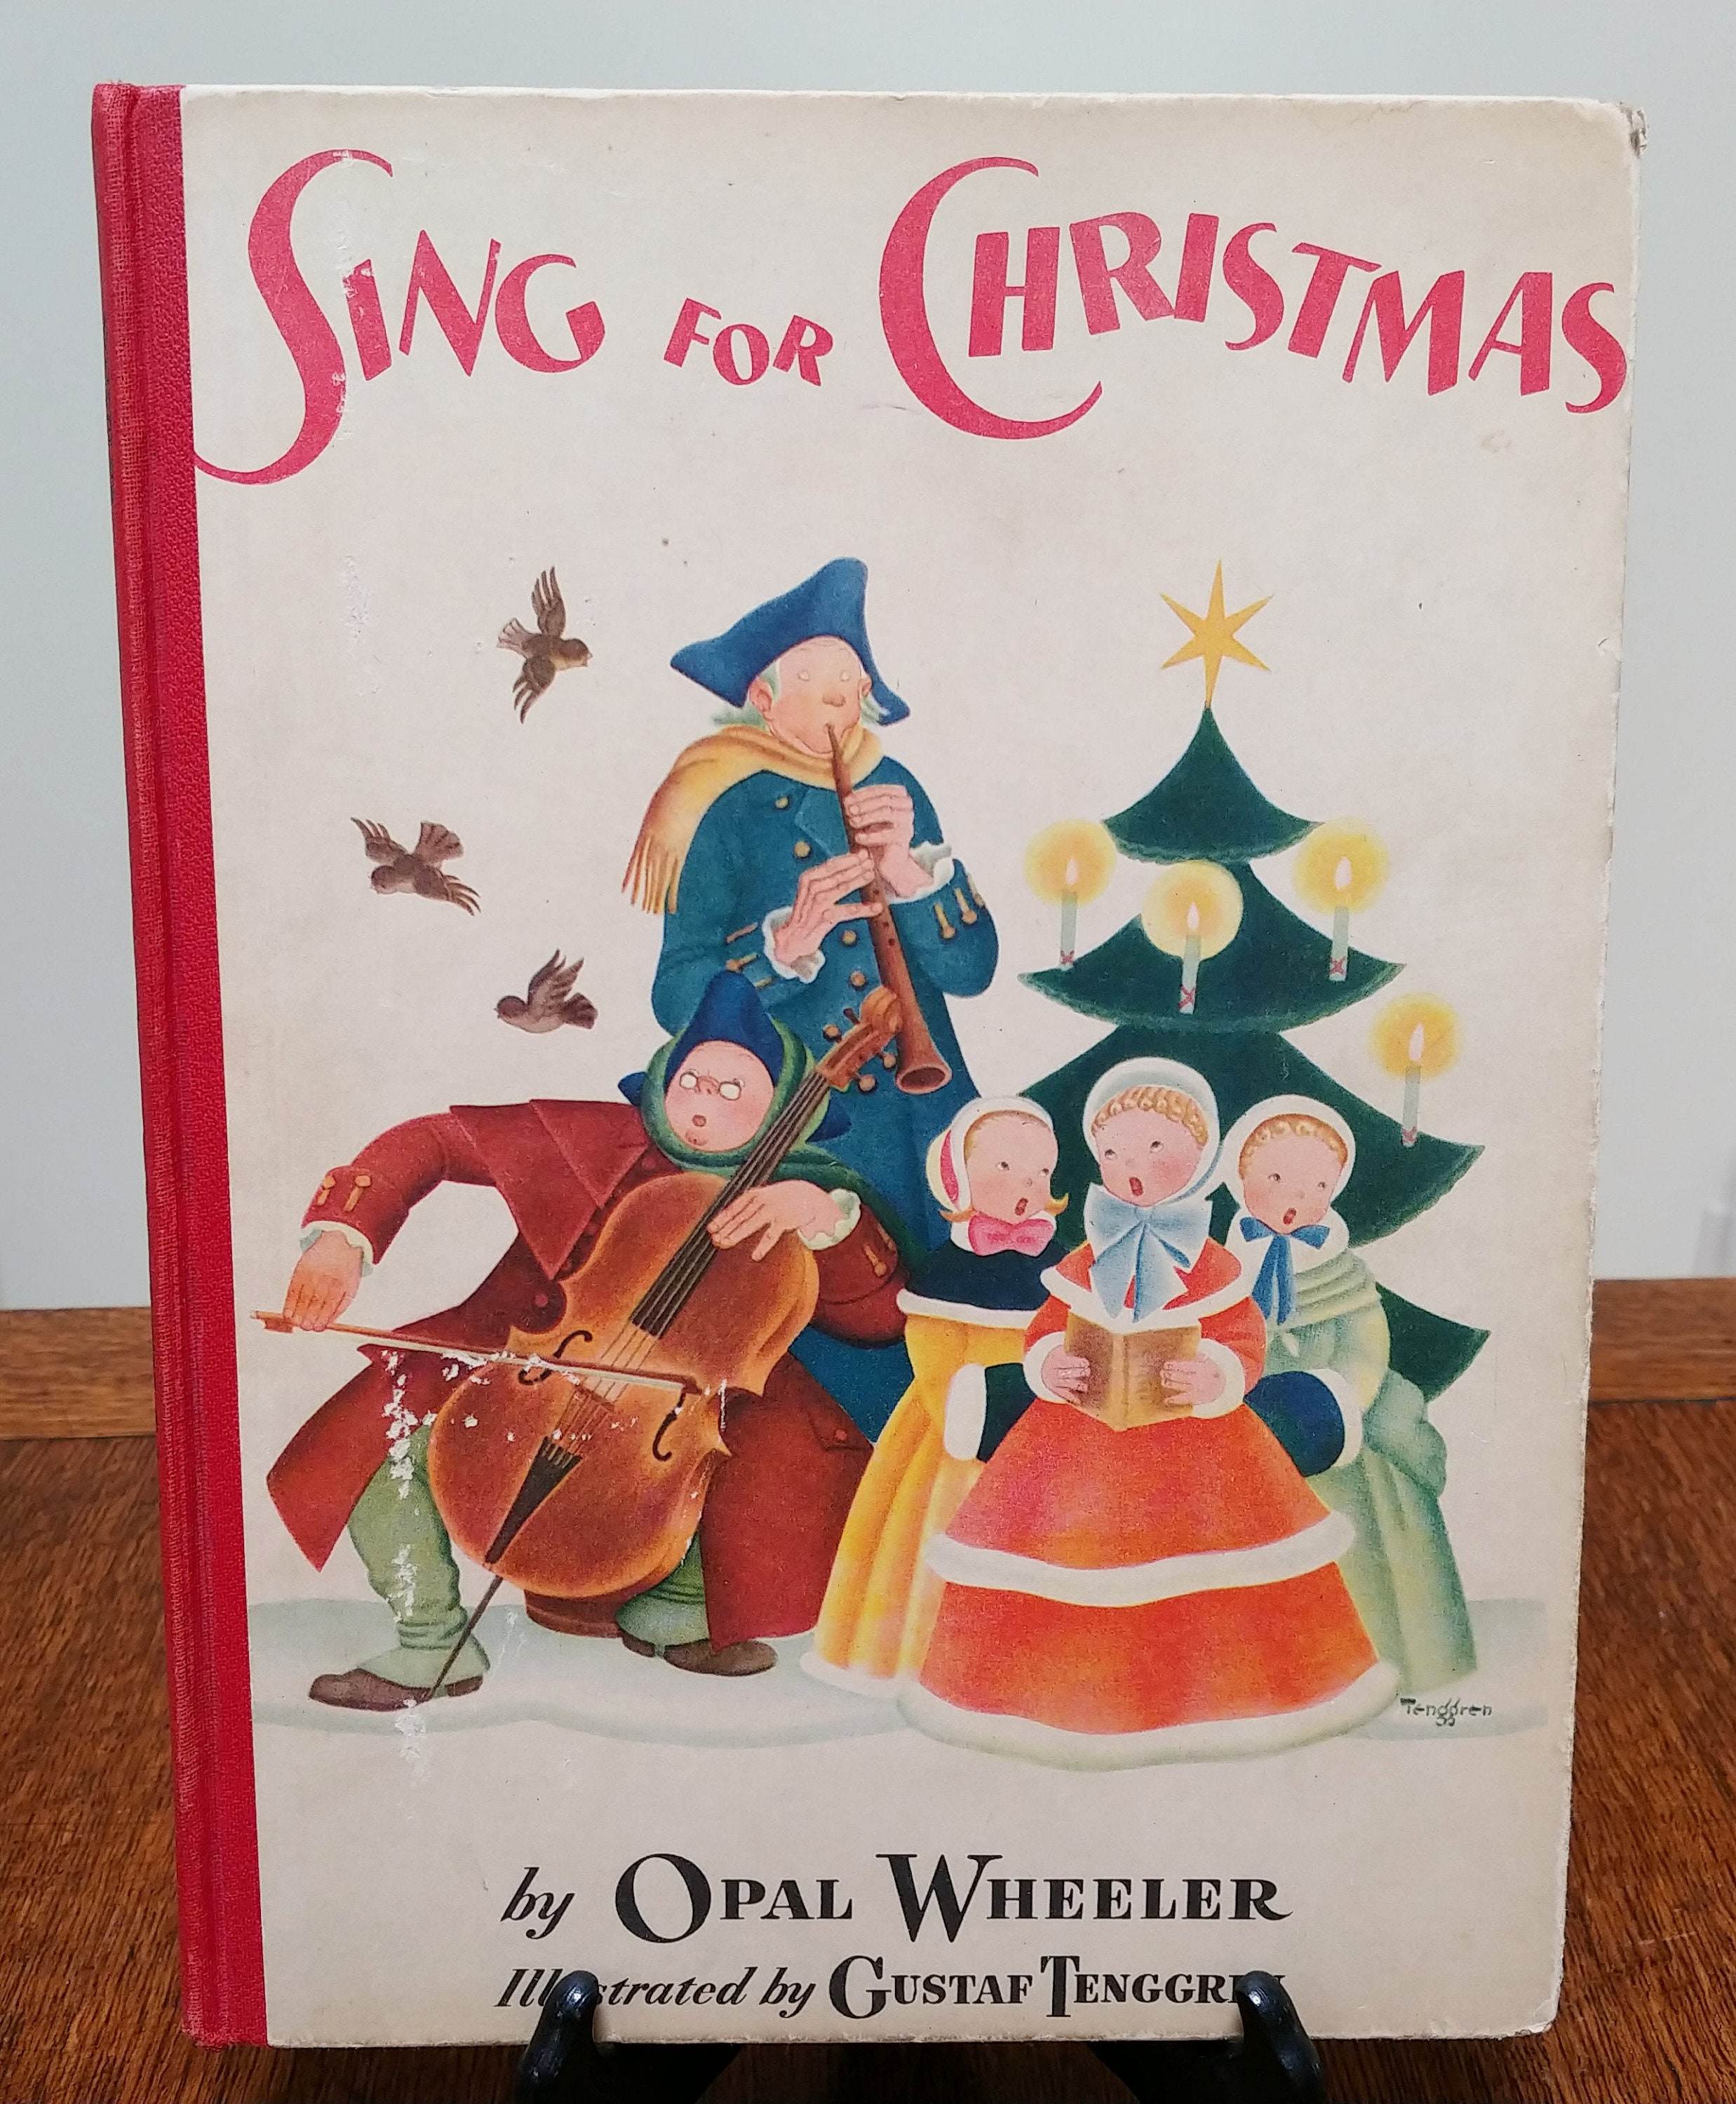 sing for christmas by gustaf tenggren opal wheeler first edition childrens books christmas music music books walt disney artist - Disney Christmas Music